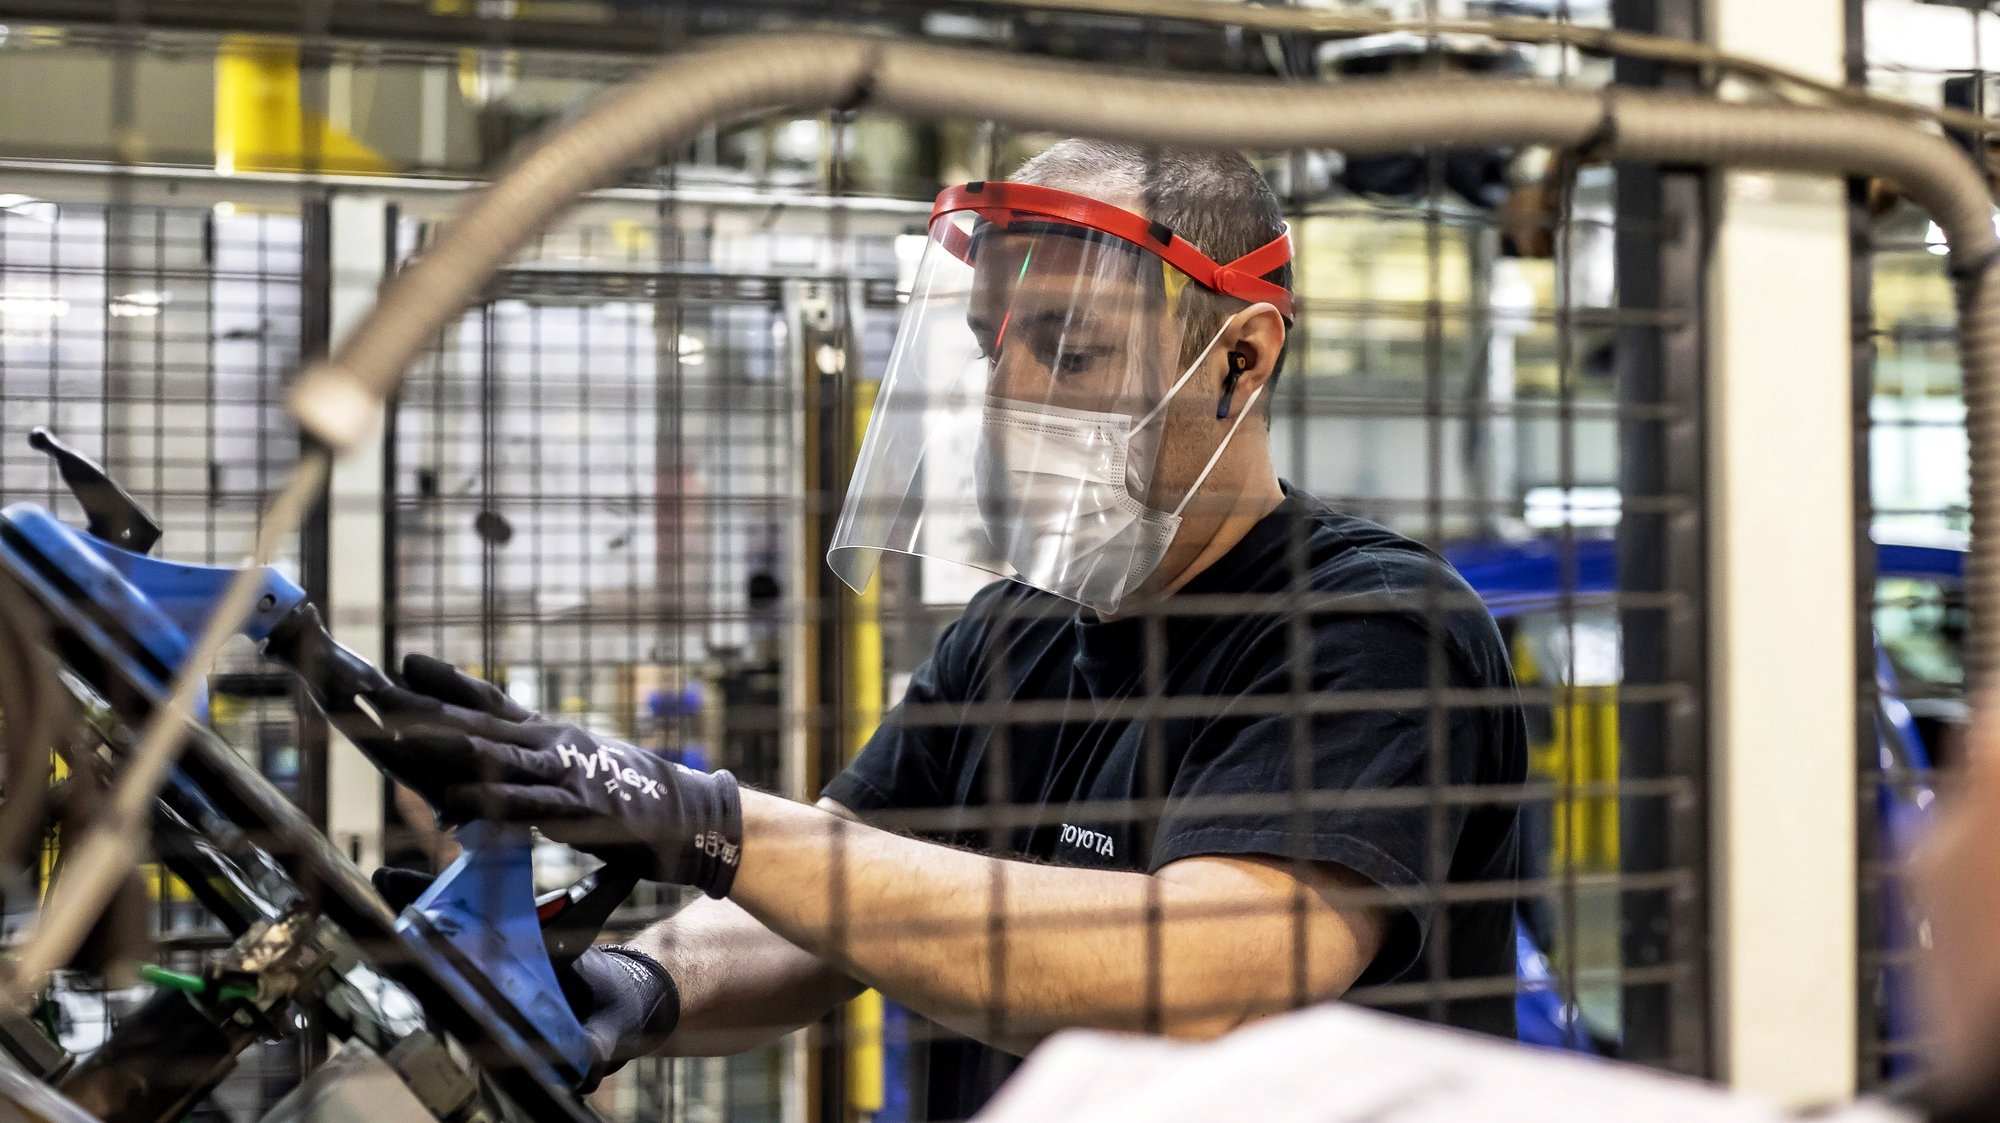 epa08389681 A Toyota employee wears a protective face shield while working at the car manufacturing plant where the Yaris model is assembled for the European market in Onnaing, near Valenciennes, northern France, 28 April 2020. Toyota is the first vehicle plant reopening in France since the start of the national lockdown due the ongoing coronavirus COVID-19 pandemic. Only one third of the employees returned to work, having to respect strong safety measures. The challenge is to learn how to work differently from now on. The workers' temperature is checked upon arrival and they have to wear a mask which they should change twice a day.  EPA/SEBASTIEN COURDJI